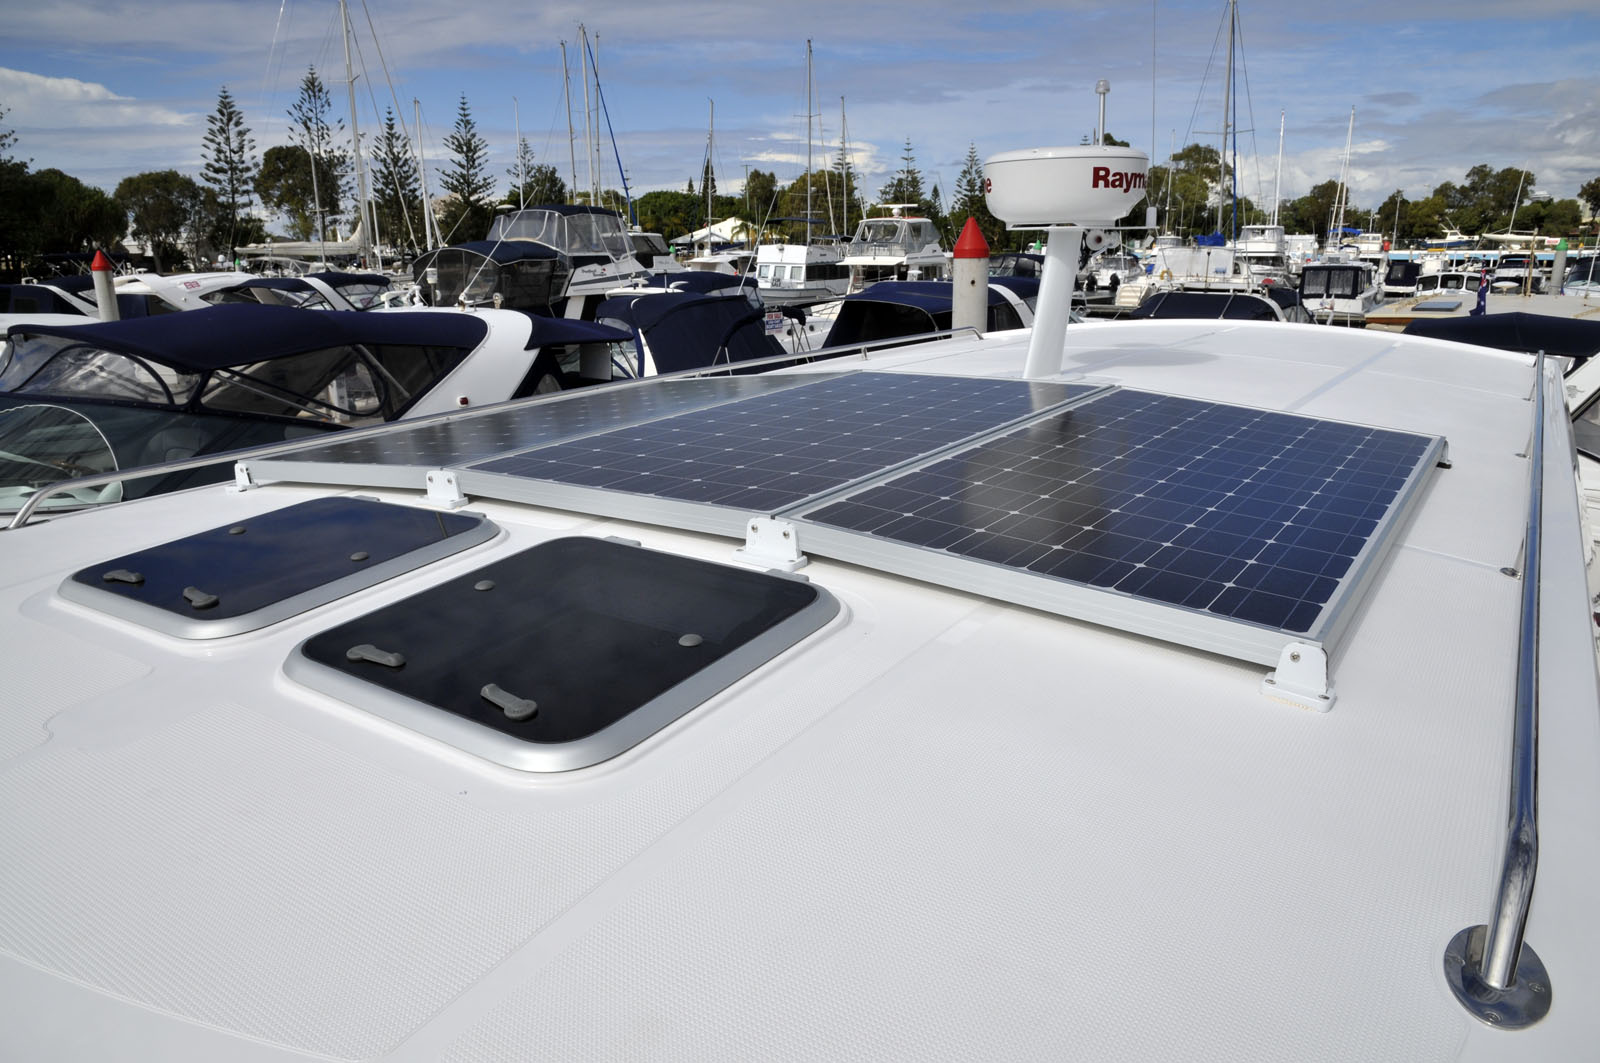 Solar Panels For Boats photos